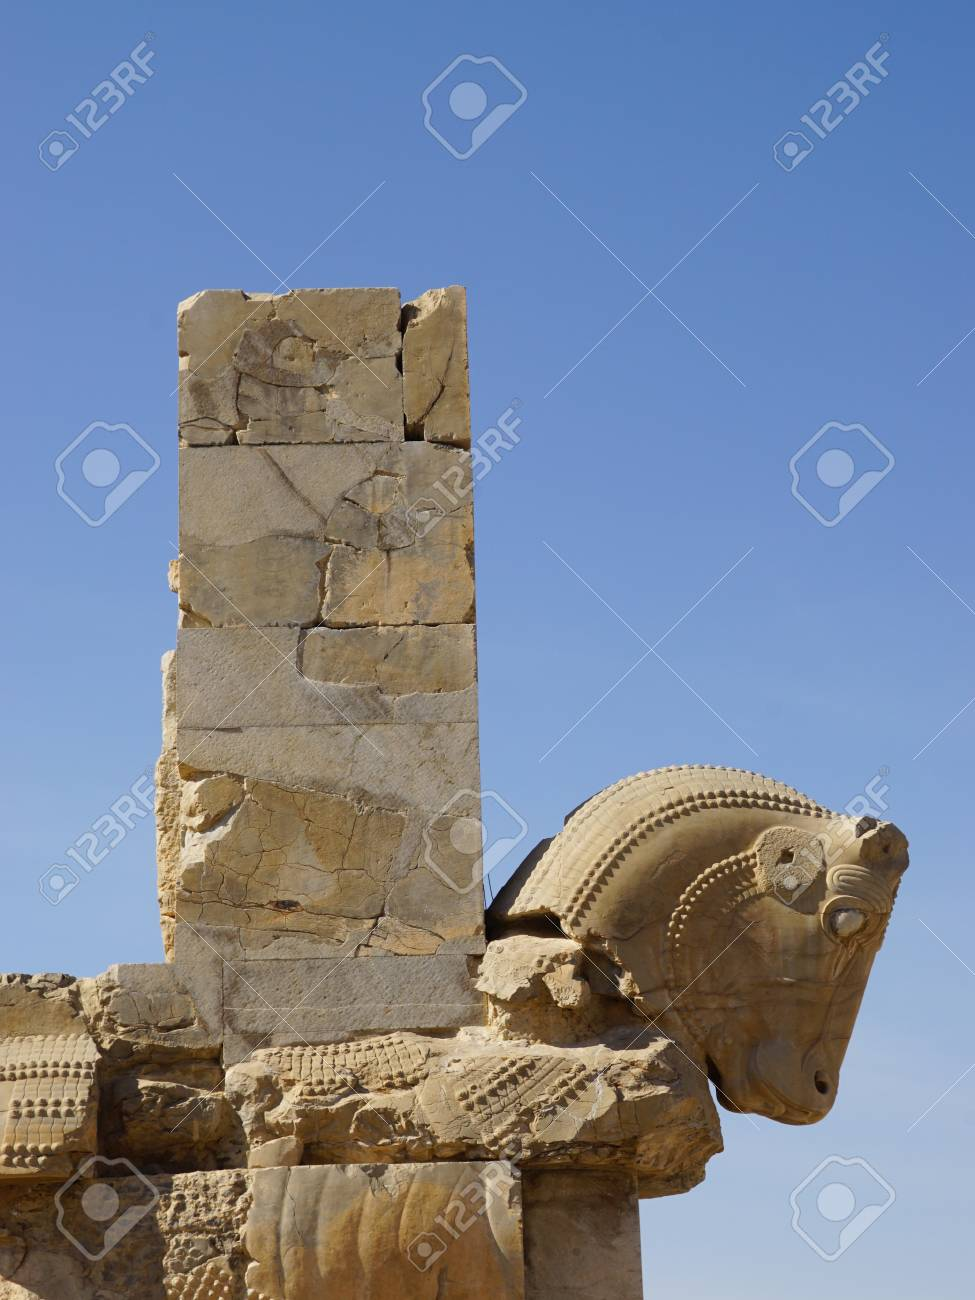 Horse Statue Of Persepolis In Shiraz Iran Stock Photo Picture And Royalty Free Image Image 49526030